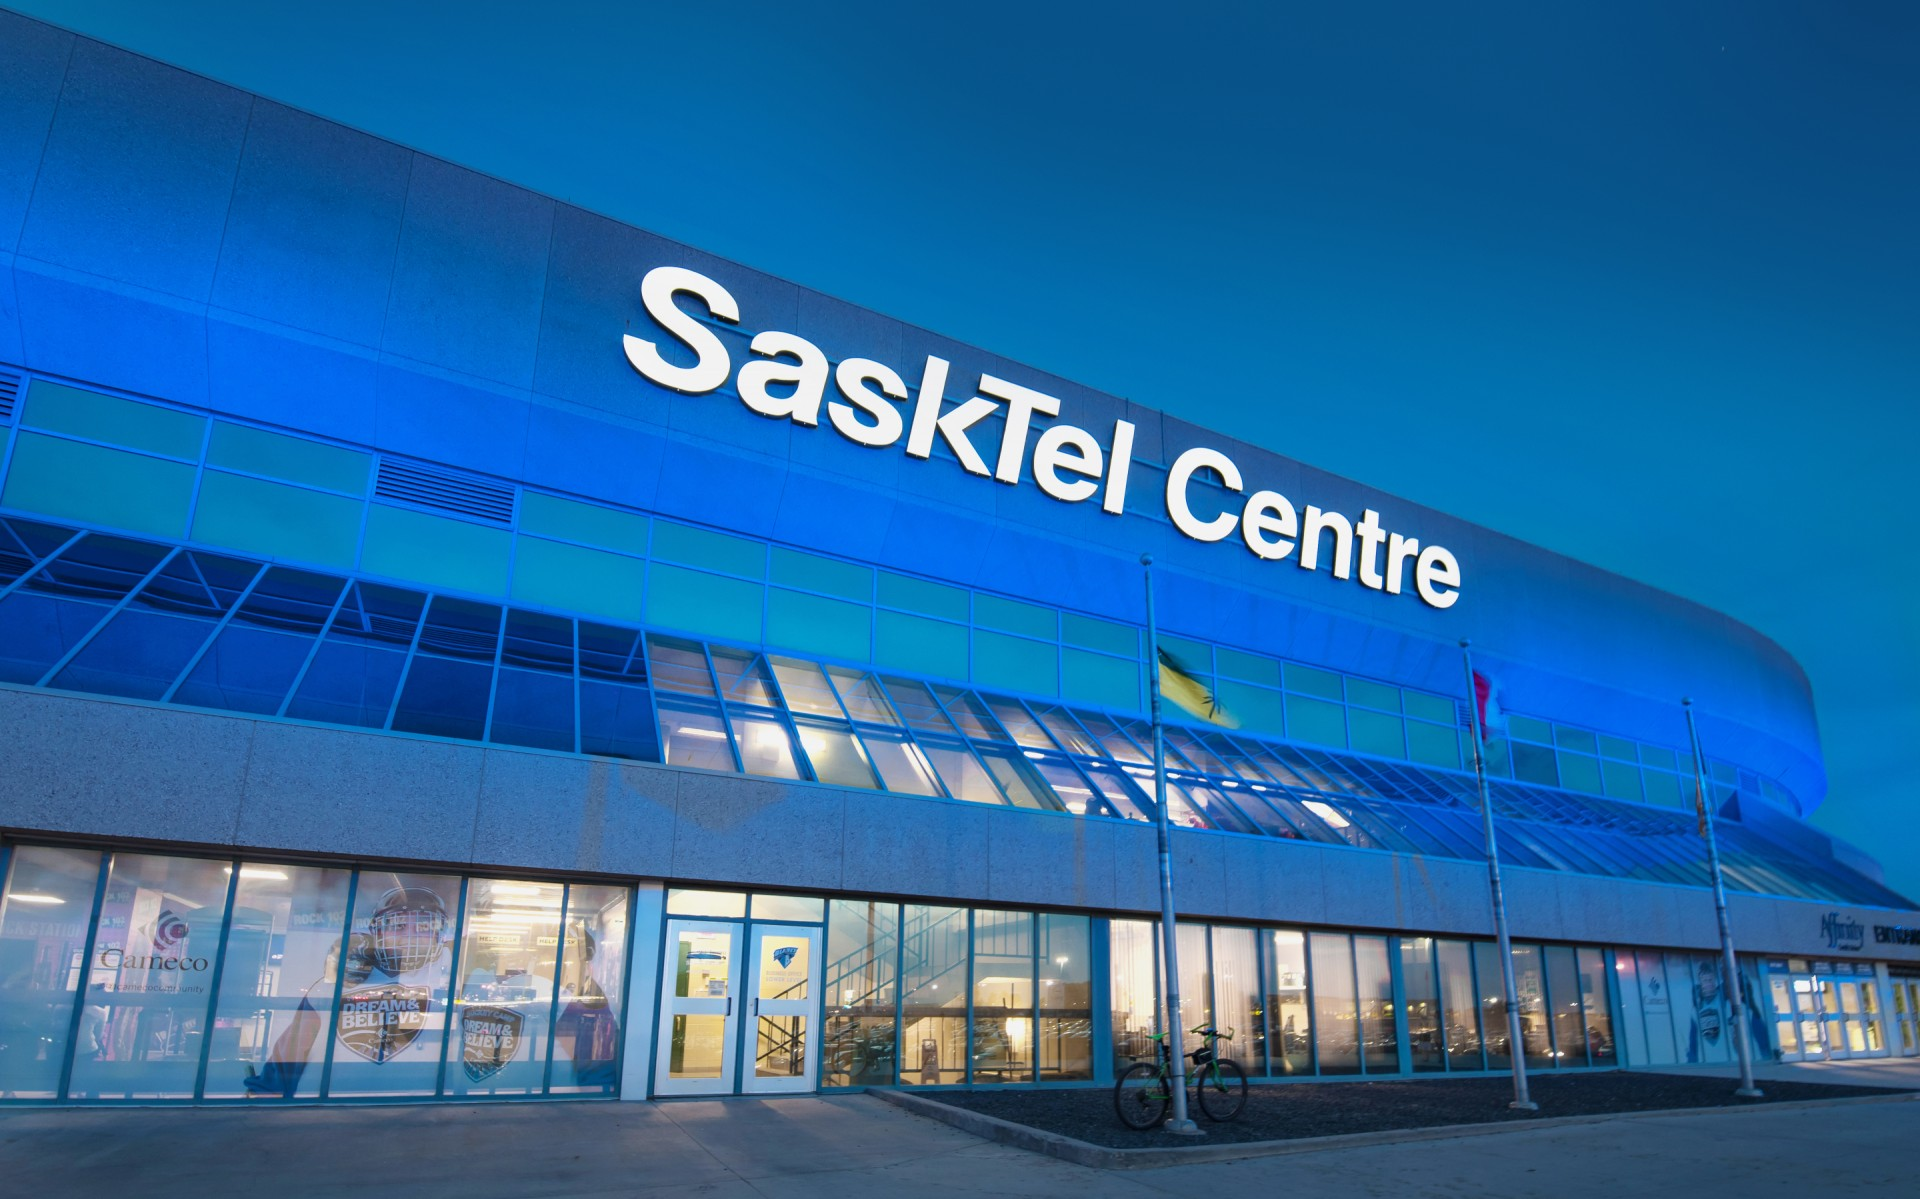 The SaskTel Centre in Saskatoon, Saskatchewan, is a 15,000-seat arena hosting sports games, concerts and other events.